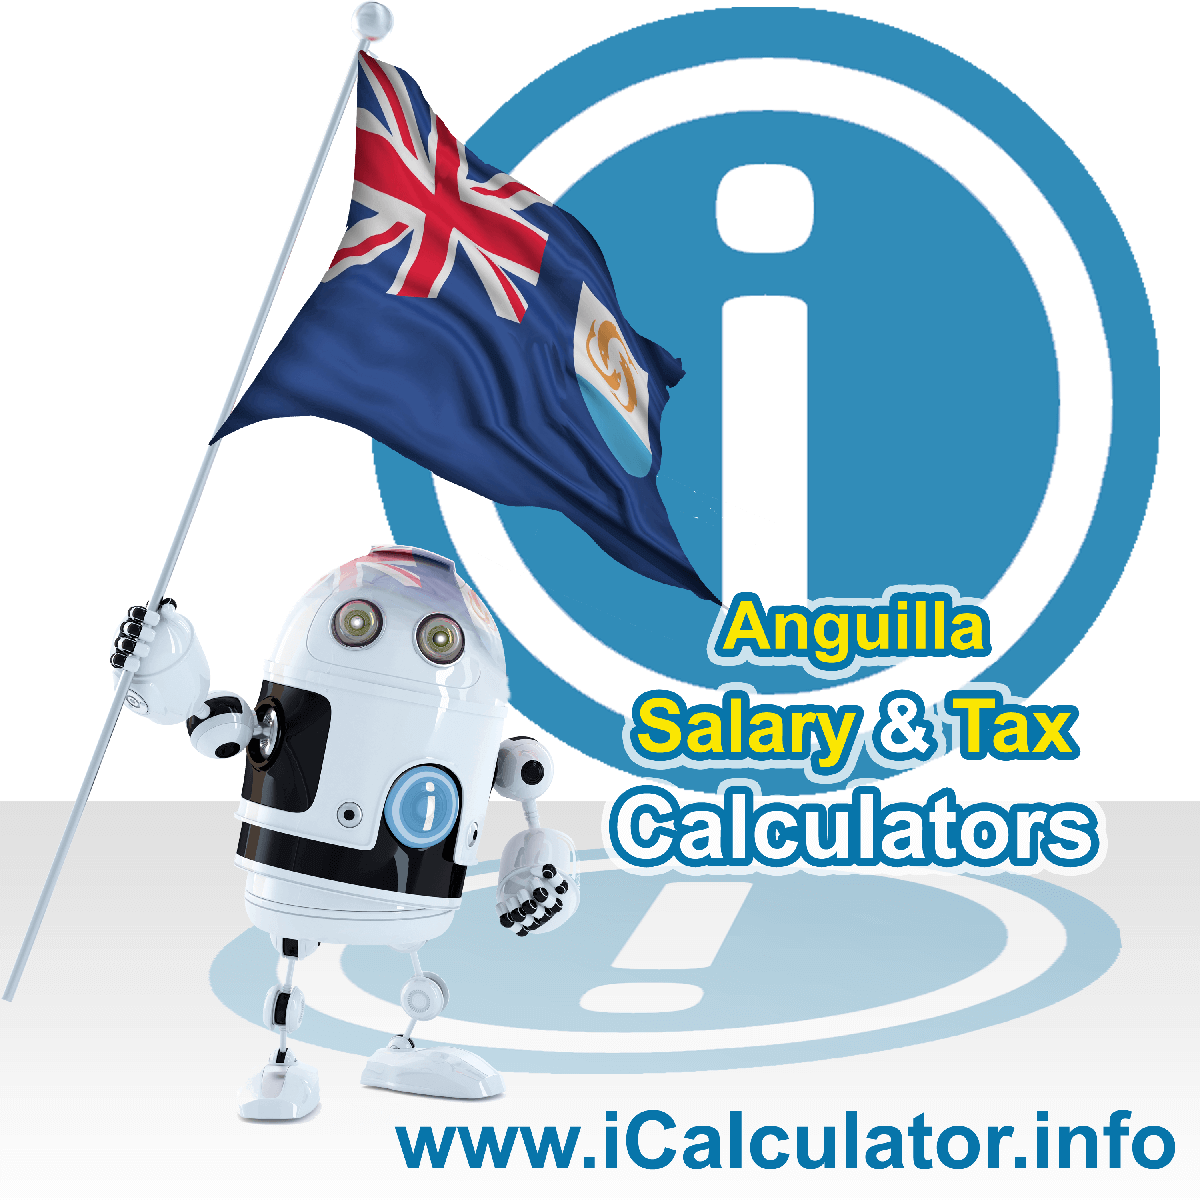 Anguilla Tax Calculator. This image shows the Anguilla flag and information relating to the tax formula for the Anguilla Salary Calculator